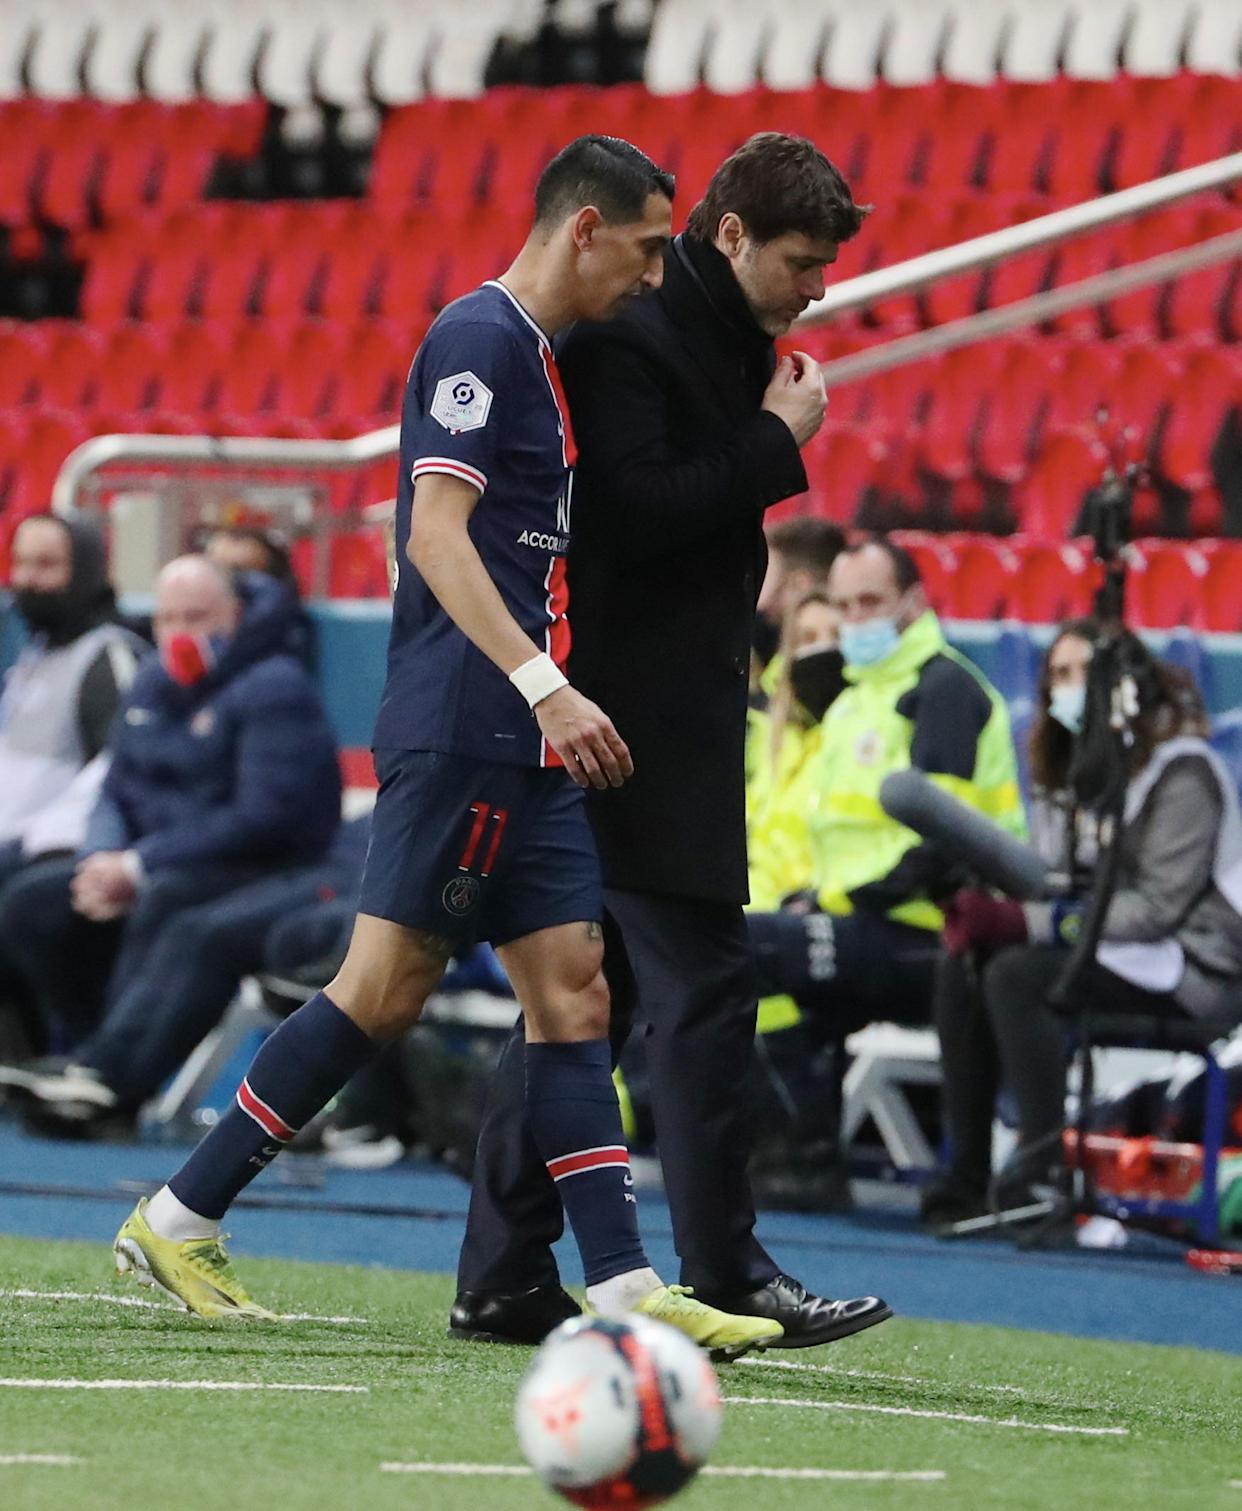 PARIS, FRANCE - MARCH 14: Angel Di Maria of Paris Saint-Germain came out by head coach Mauricio Pochettino because a violent burglary in his home during the Ligue 1 match between Paris Saint-Germain and FC Nantes at Parc des Princes on March 14, 2021 in Paris, France. (Photo by Xavier Laine/Getty Images)